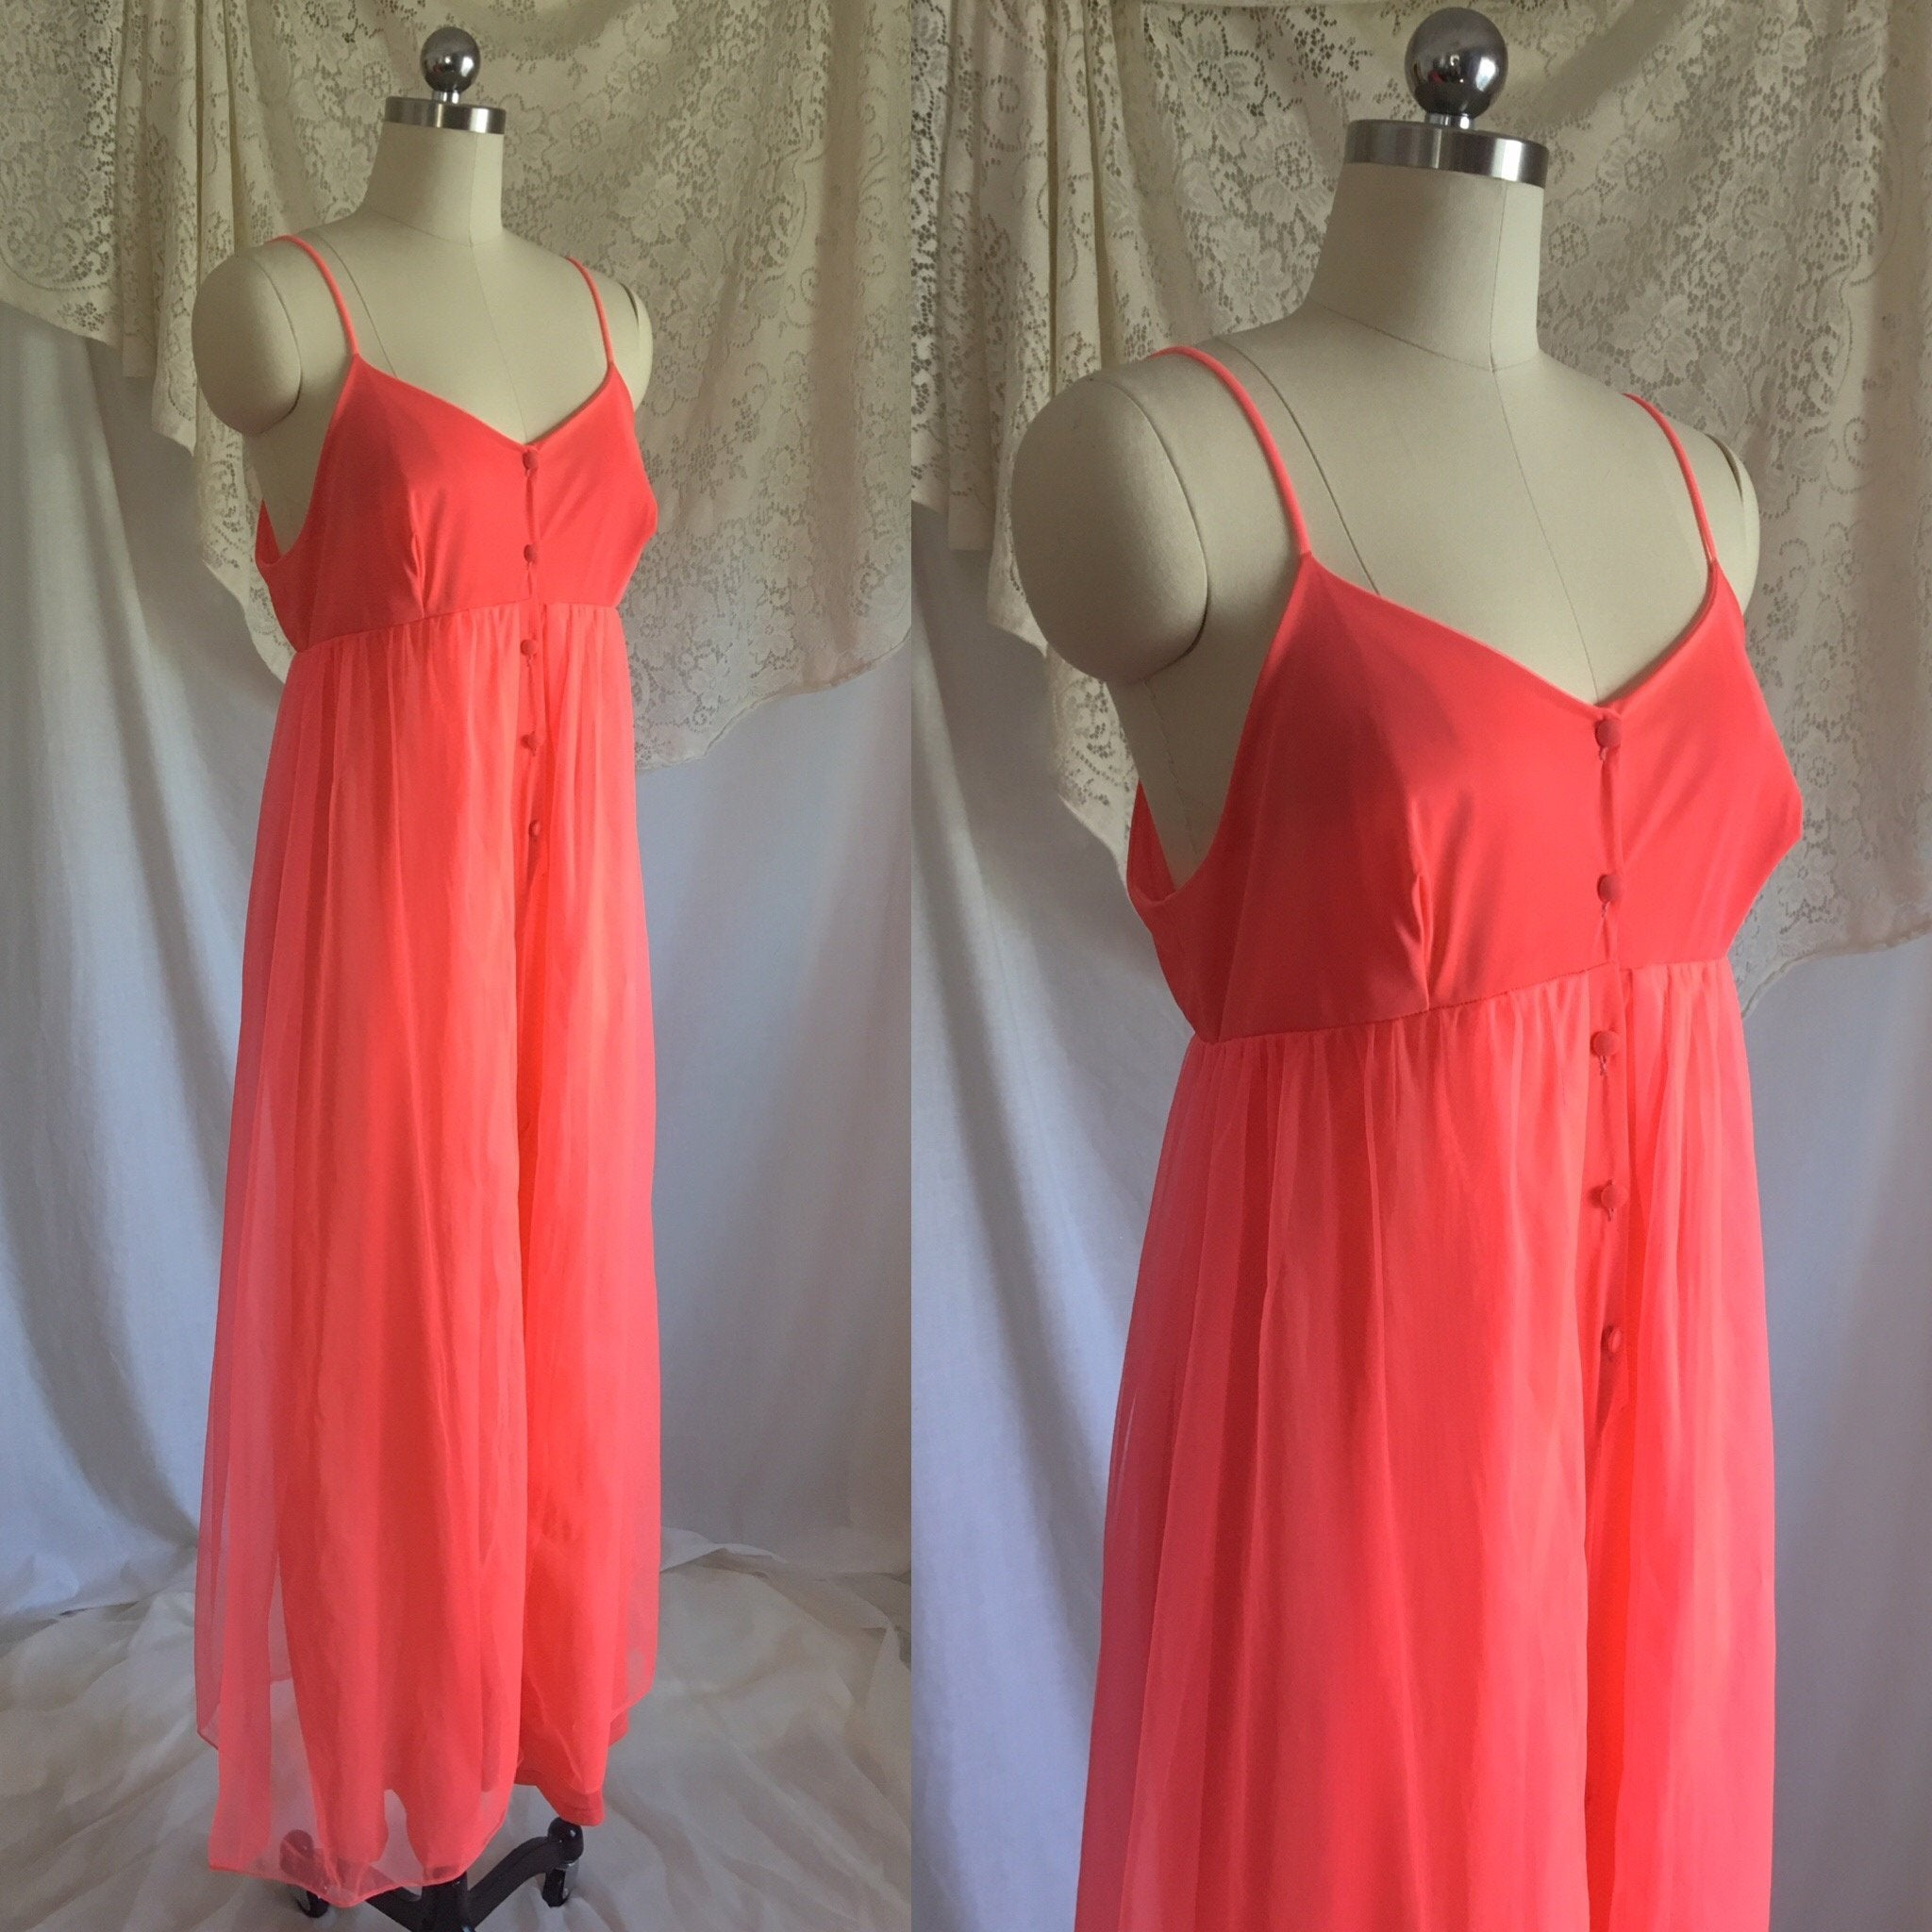 Vintage 1960's Jumpsuit Pajamas | Bright Electric Pink Nylon with Chiffon Skirt | Size S - Daggers & Dames